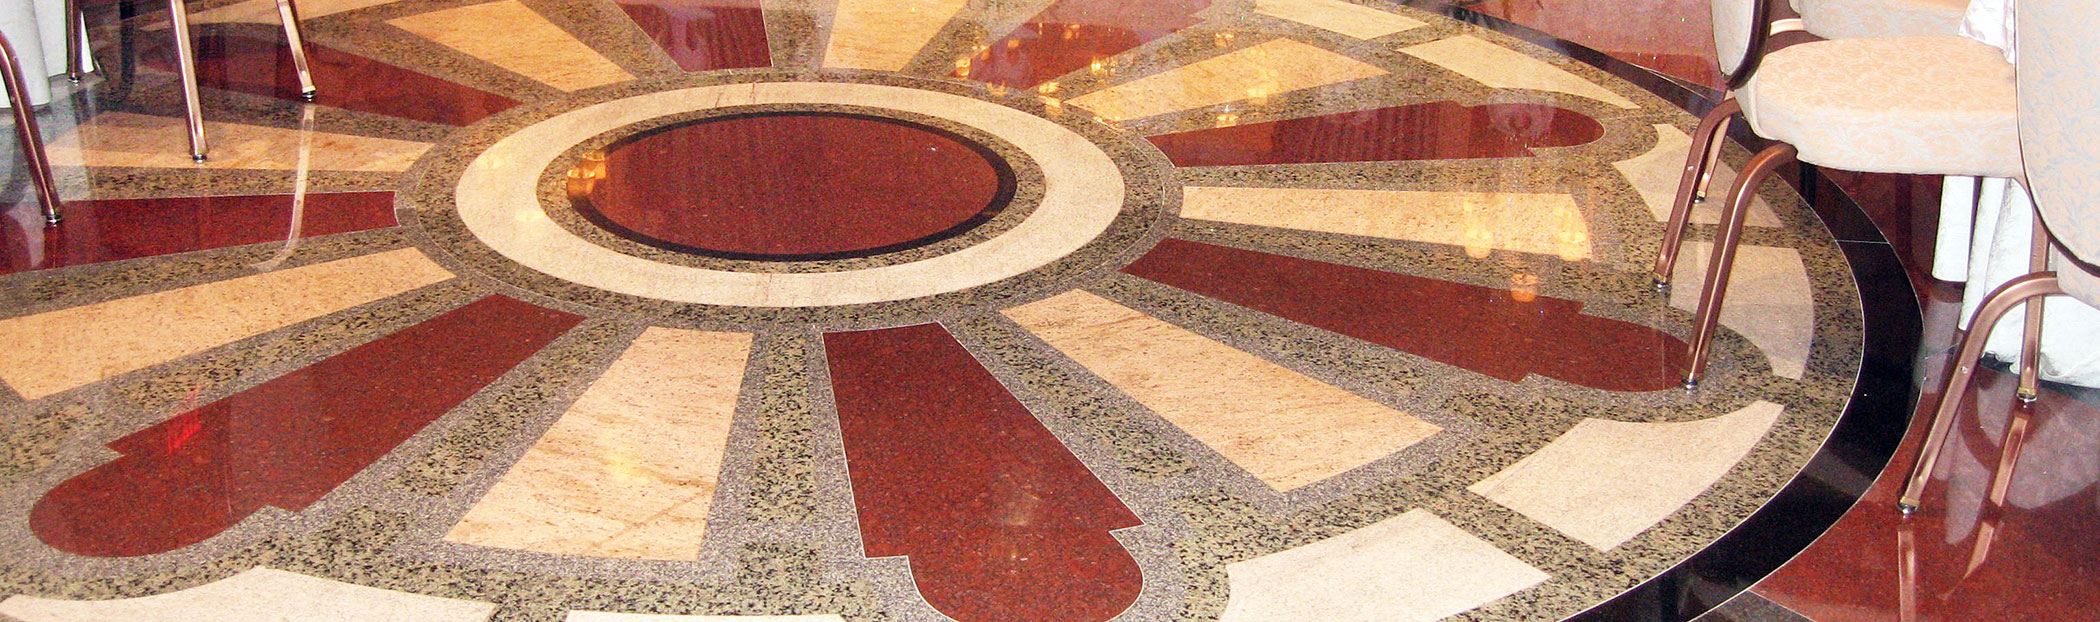 Marble Onyx Granite Terrazzo Services Projects Contact